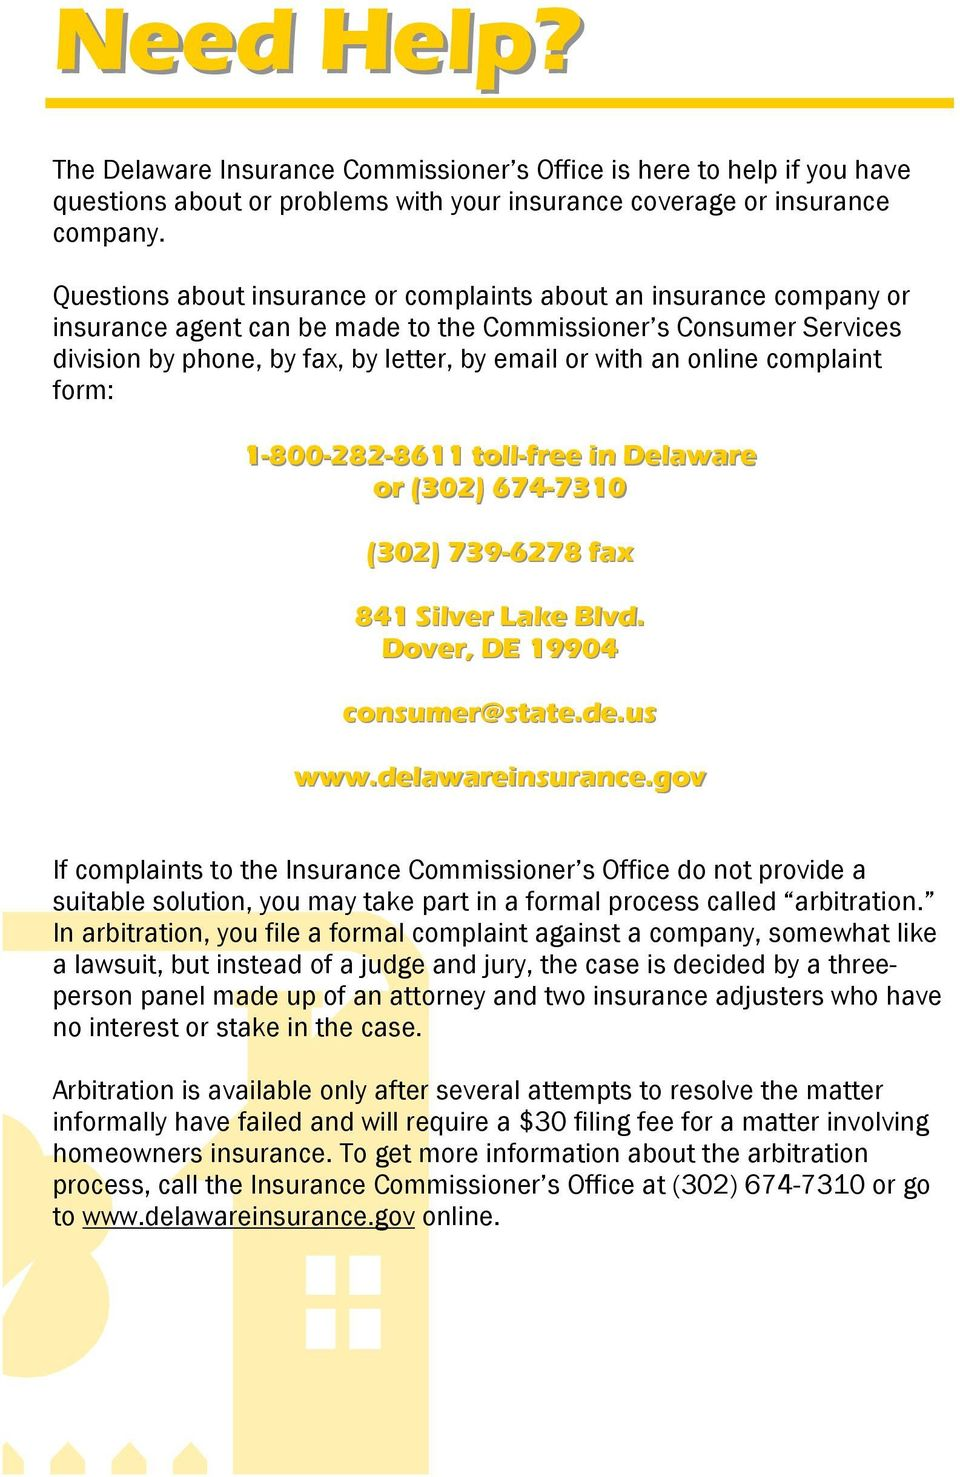 online complaint form: 1-800-282-86118611 toll-free in Delaware or (302) 674-7310 7310 (302) 739-6278 fax 841 Silver Lake Blvd. Dover, DE 19904 consumer@state.de.us www.delawareinsurance.